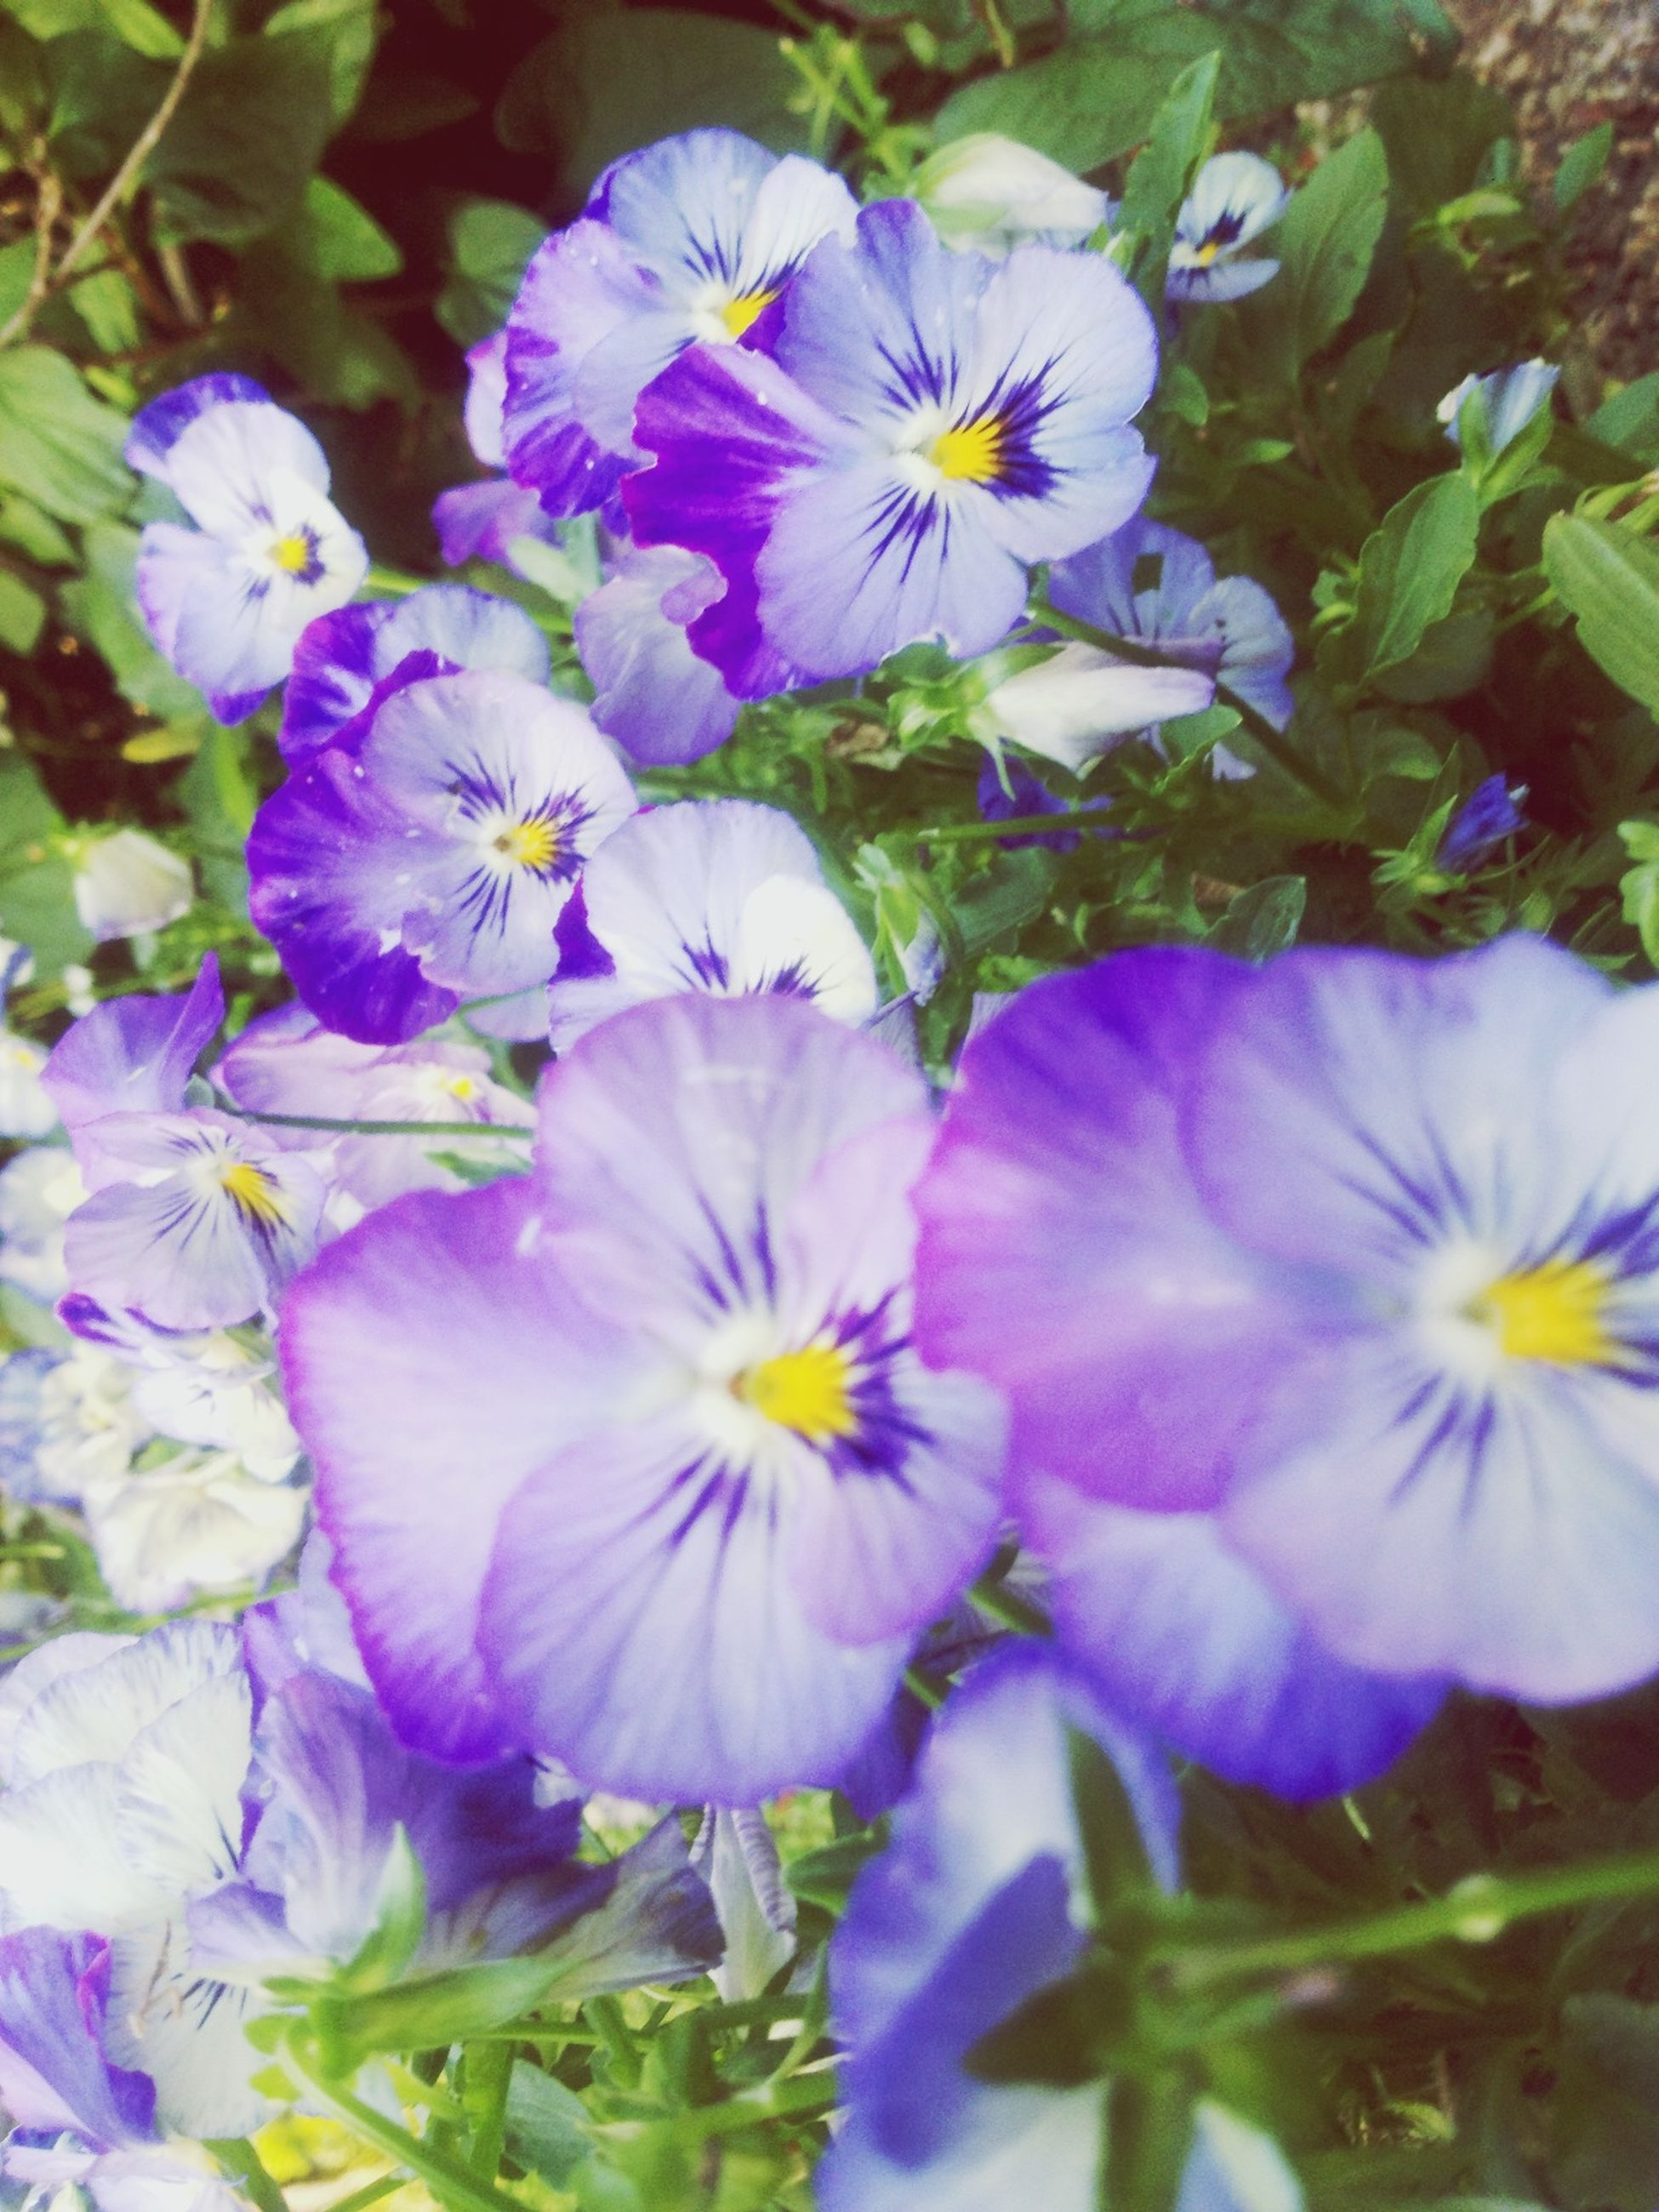 flower, freshness, petal, fragility, purple, growth, flower head, beauty in nature, blooming, high angle view, plant, nature, in bloom, close-up, blue, blossom, leaf, springtime, day, outdoors